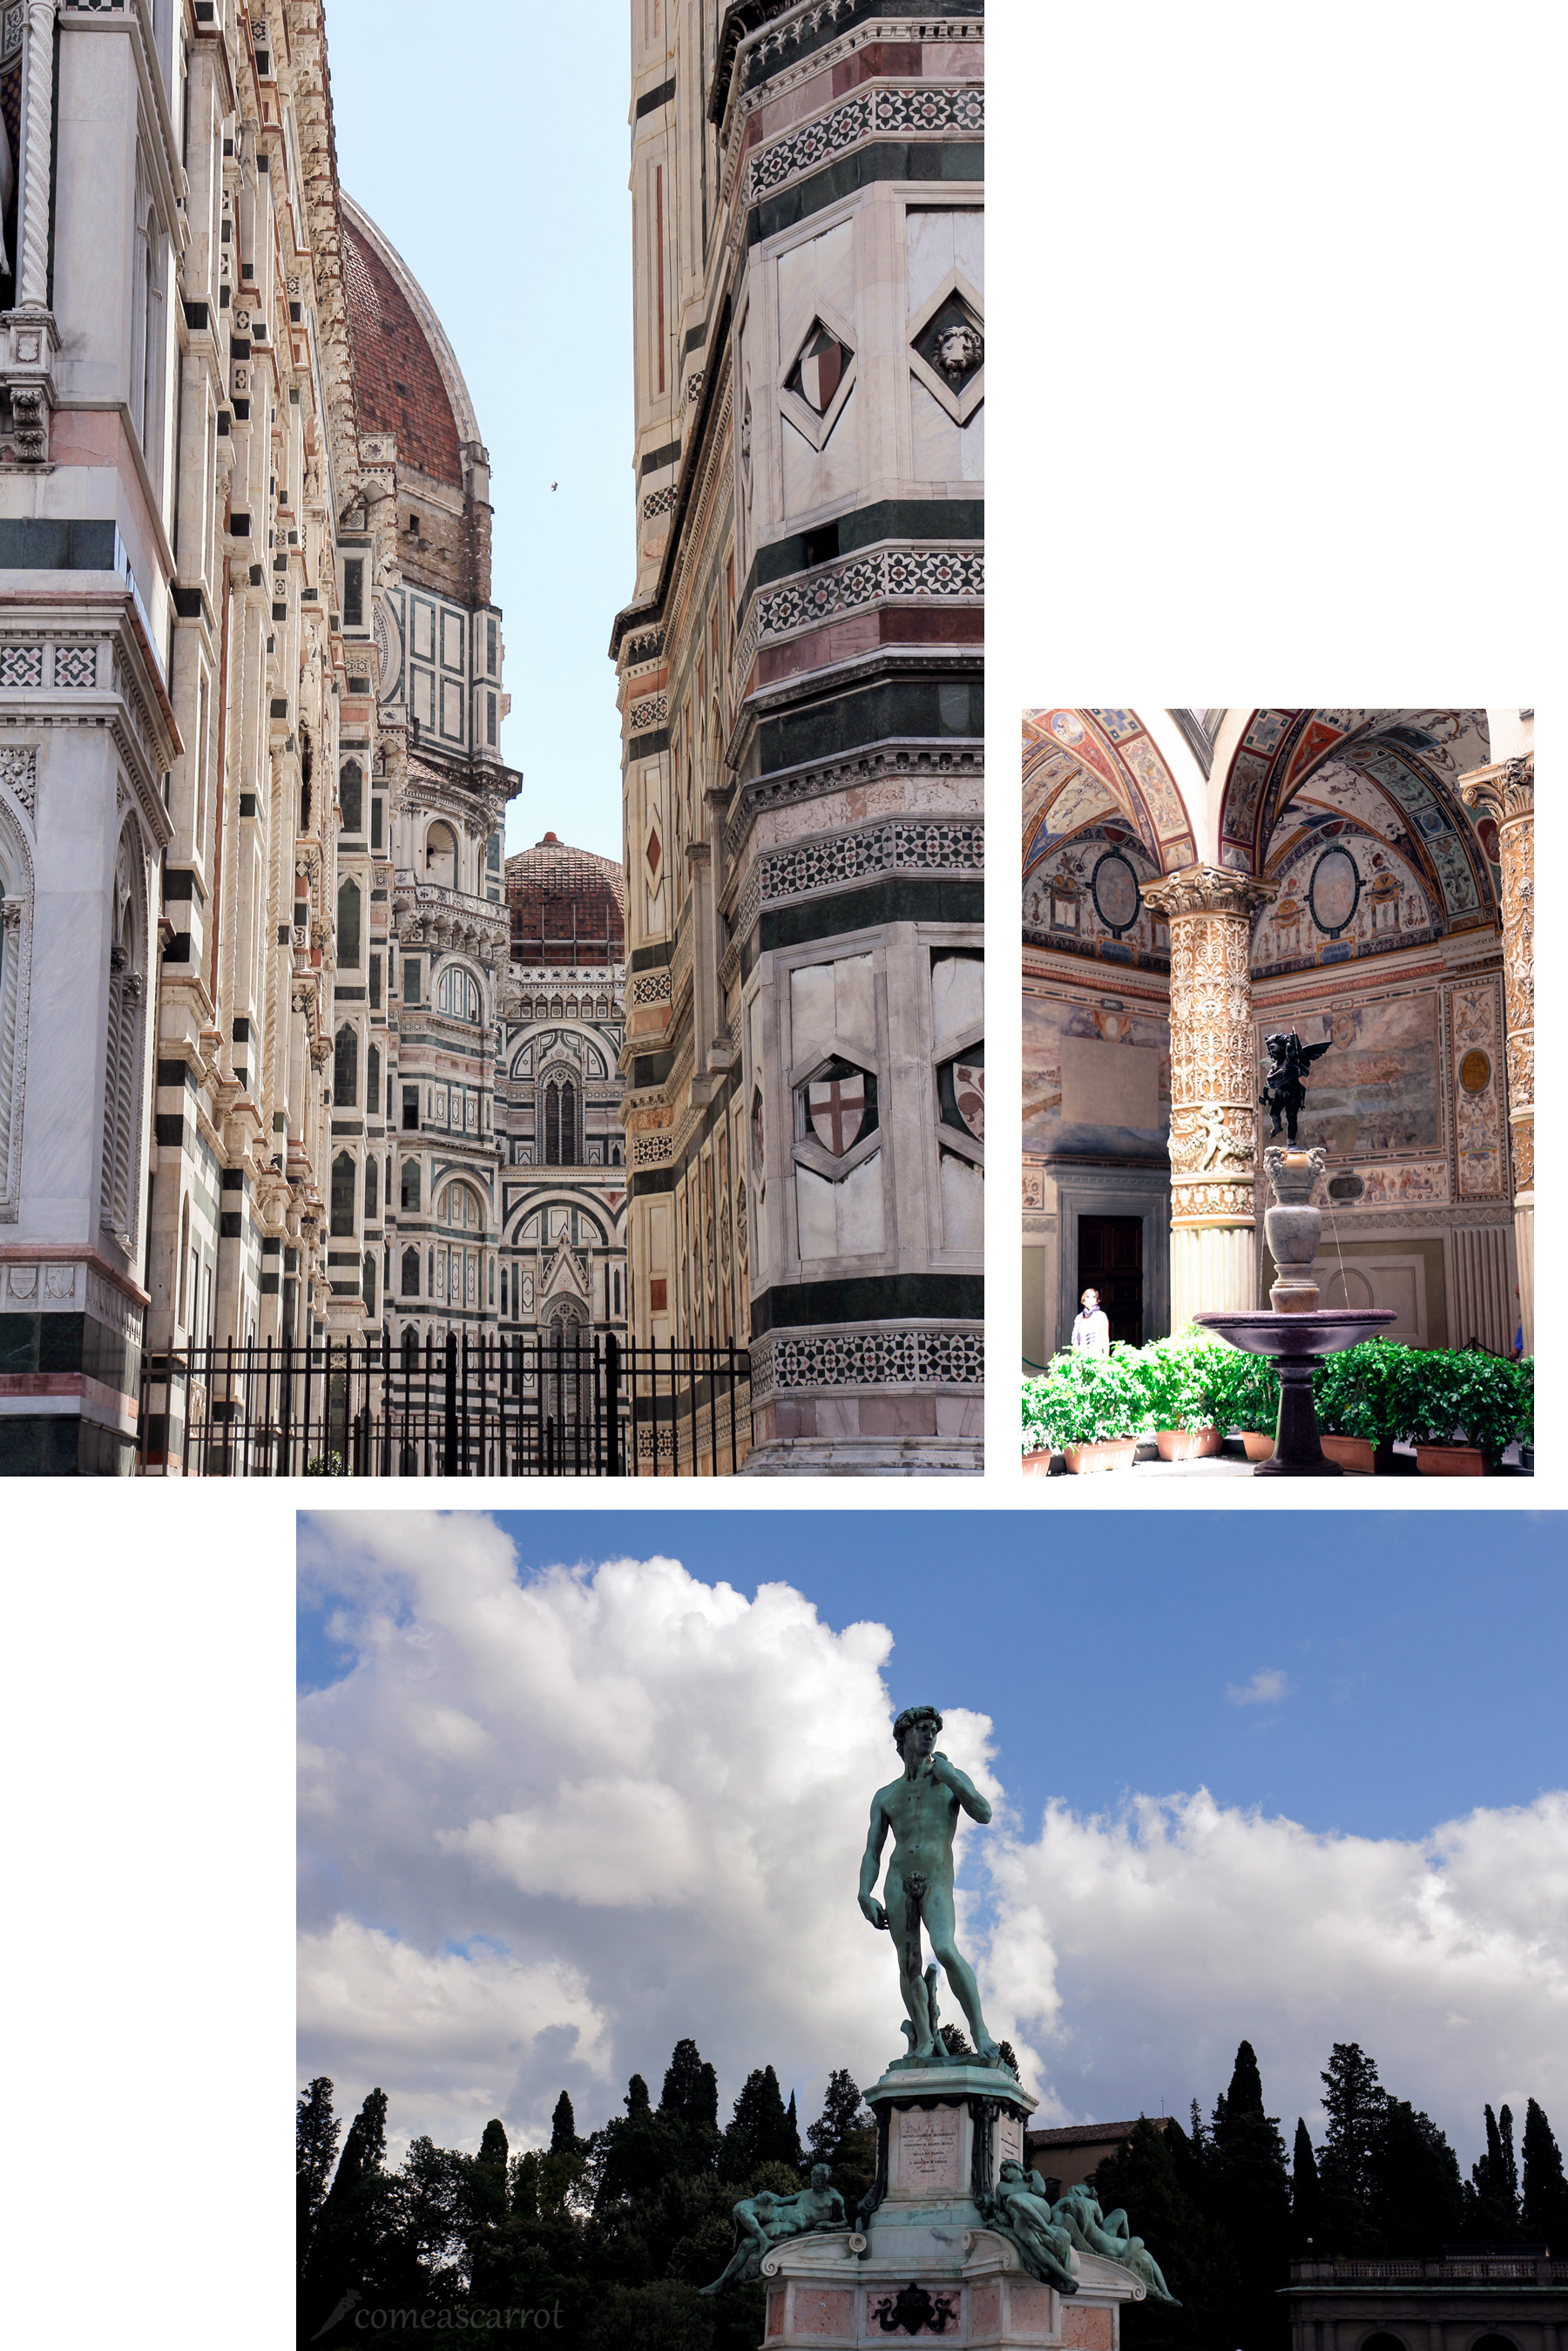 travel, florence, firenze, guide, tipps, florenz, italy, italien, city, fashionblog, fashion blog, blogger, fashionblogger, mode blog, deutschland, comeascarrot, come as carrot, things, to do, duomo, Santa Maria del Fiore, kathedrale, Piazza Michelangelo